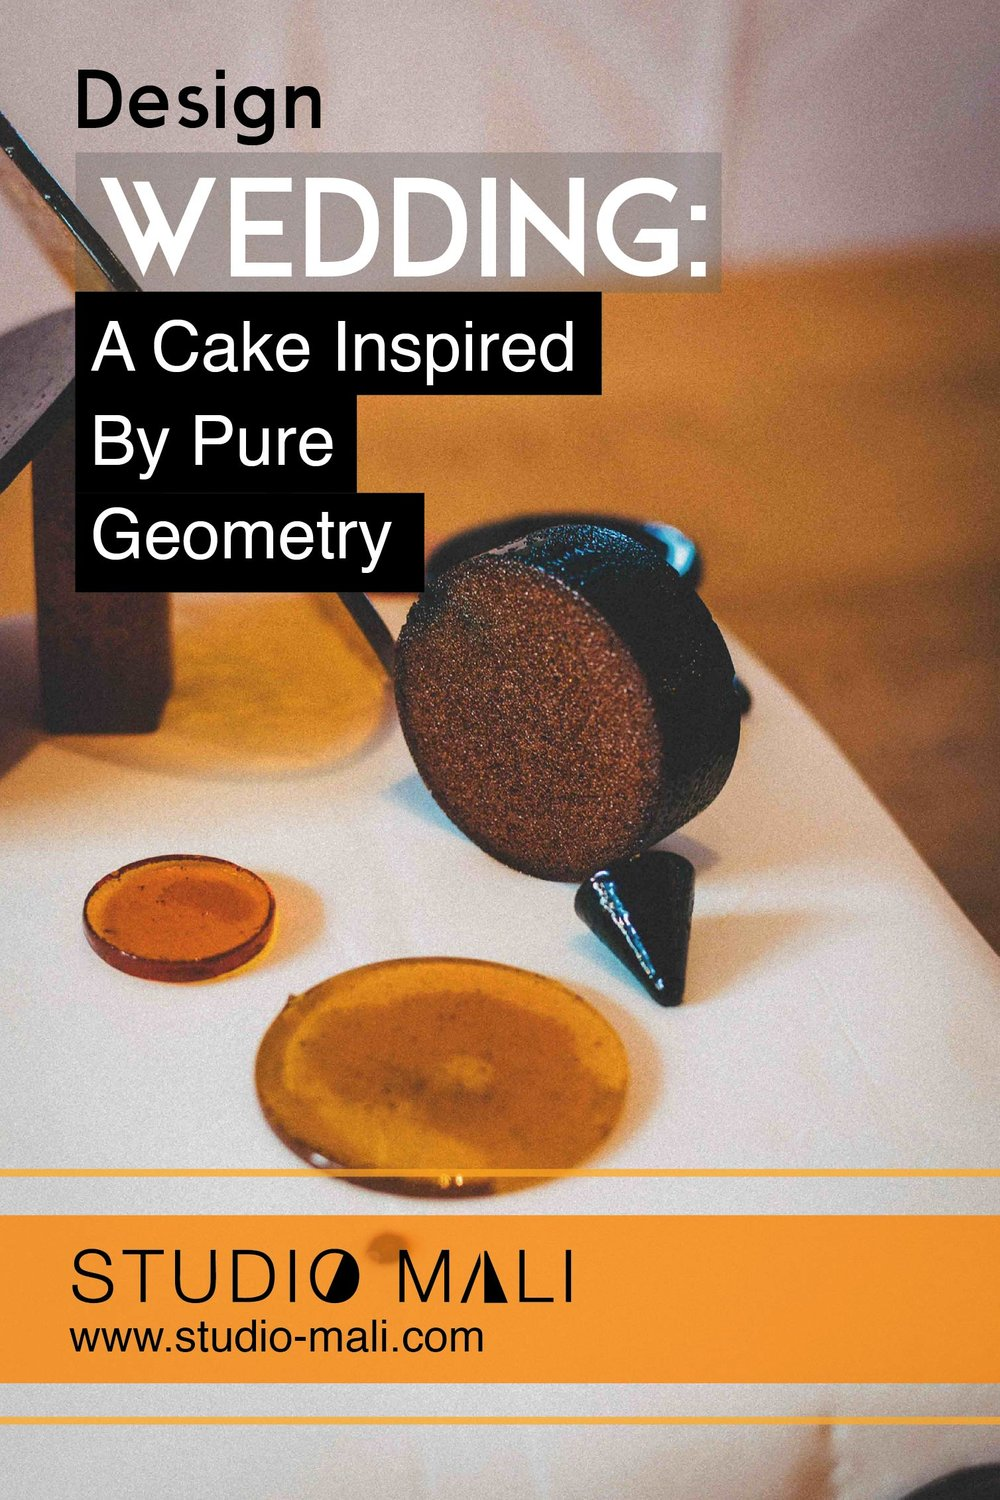 A Wedding Cake- Inspired by Pure Geometry, by Studio Mali